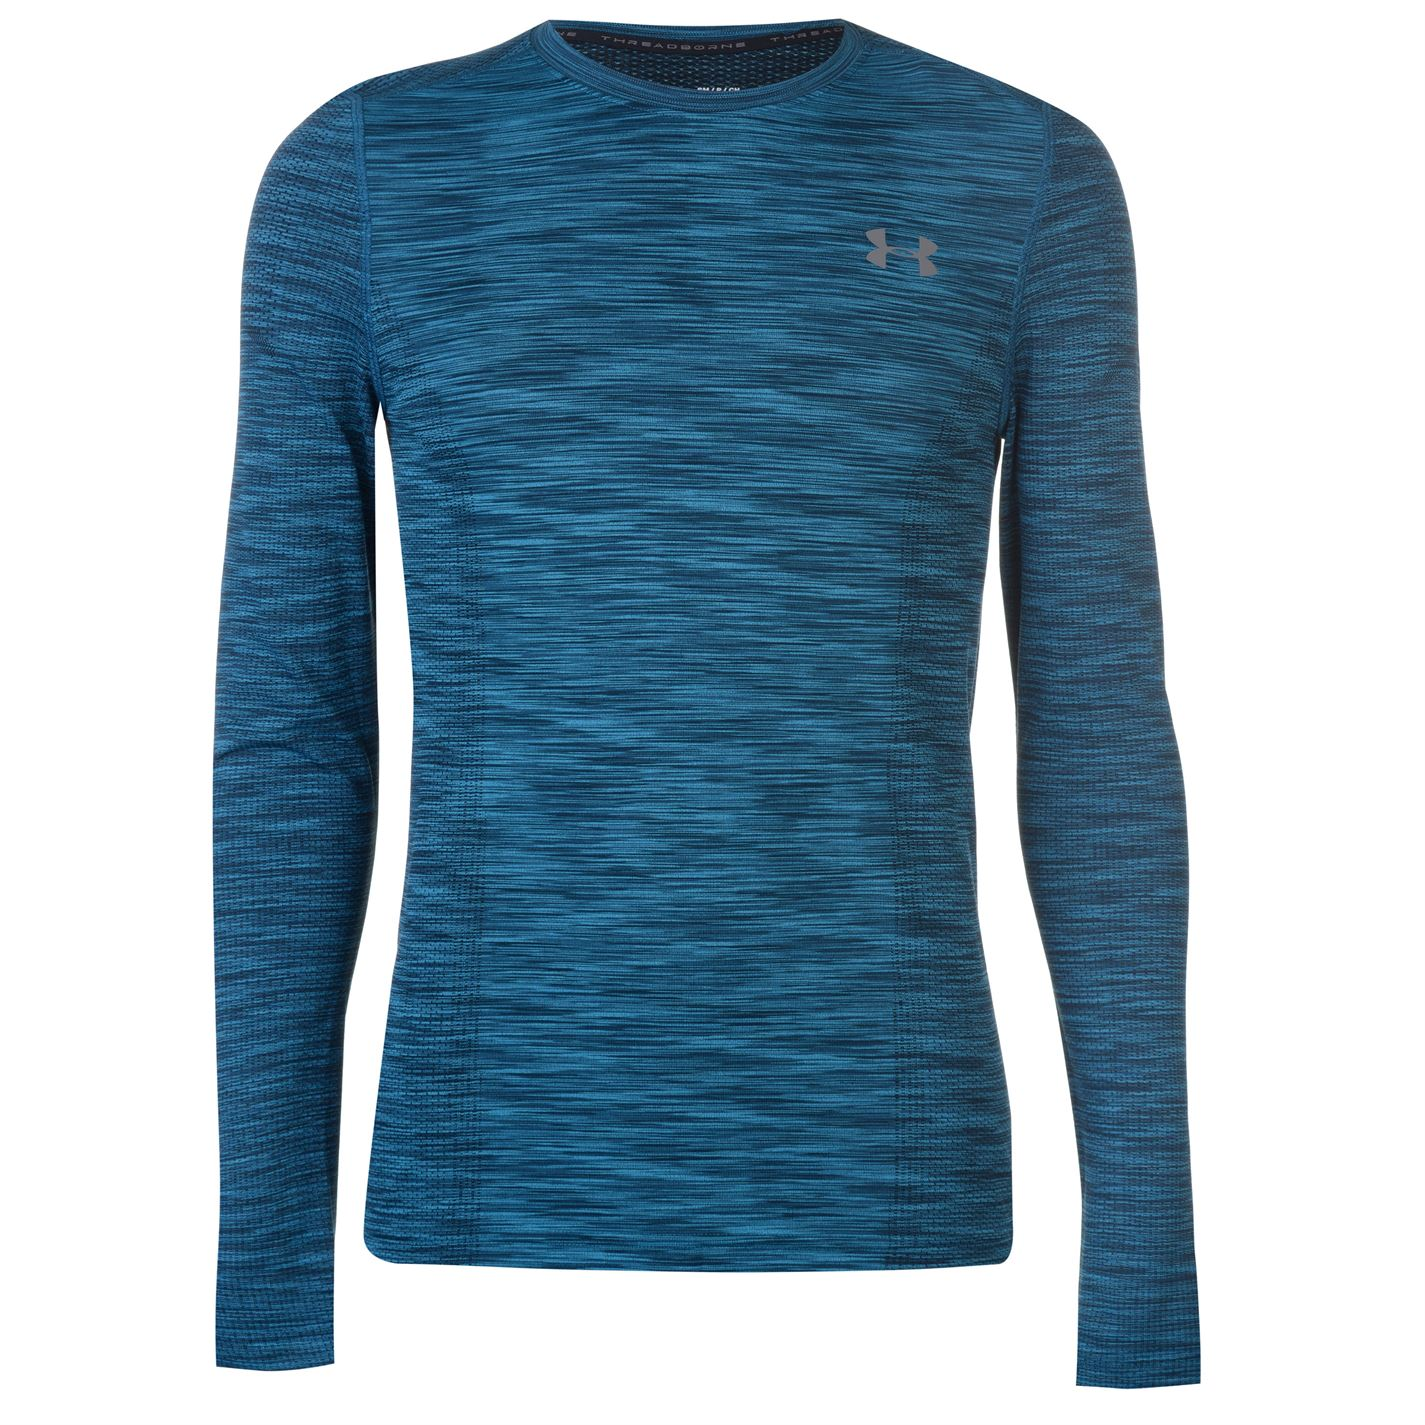 Under Armour Threadborne Long Sleeve Seamless T Shirt Mens - Glami.hu 76cbd2d934